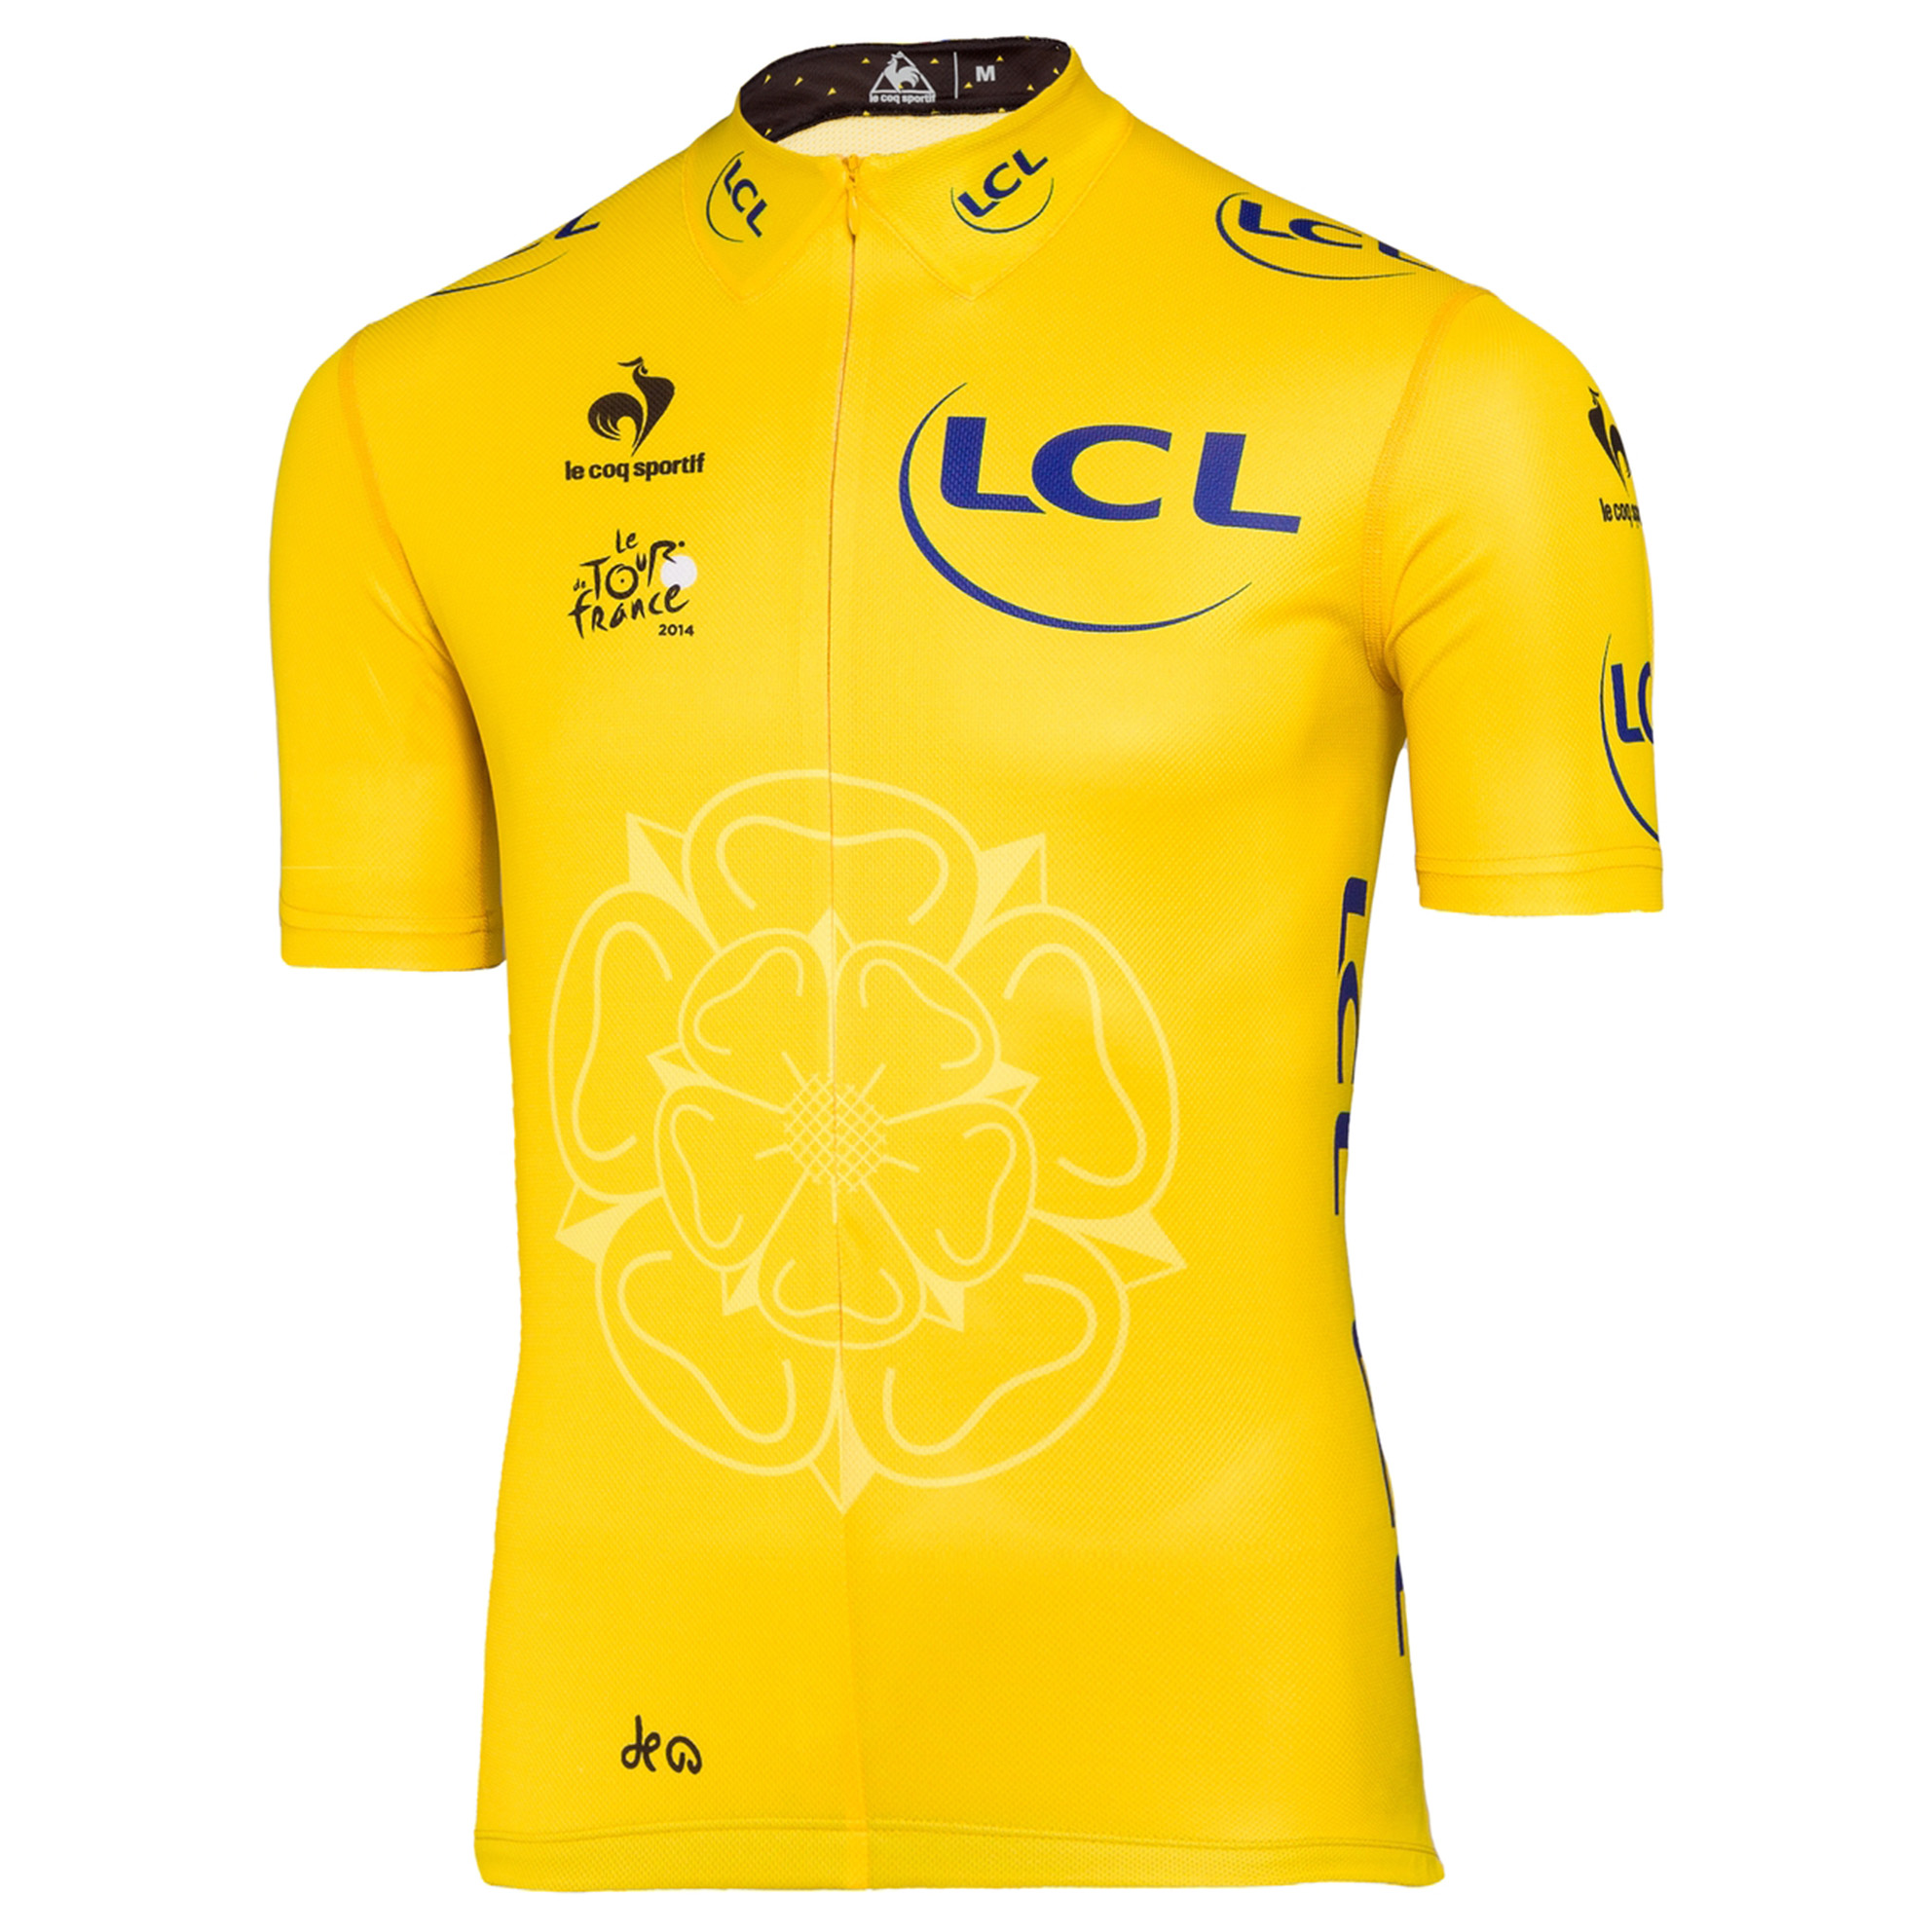 Le Tour de France Le Coq Sportif Replica Jersey - Yellow - Kids